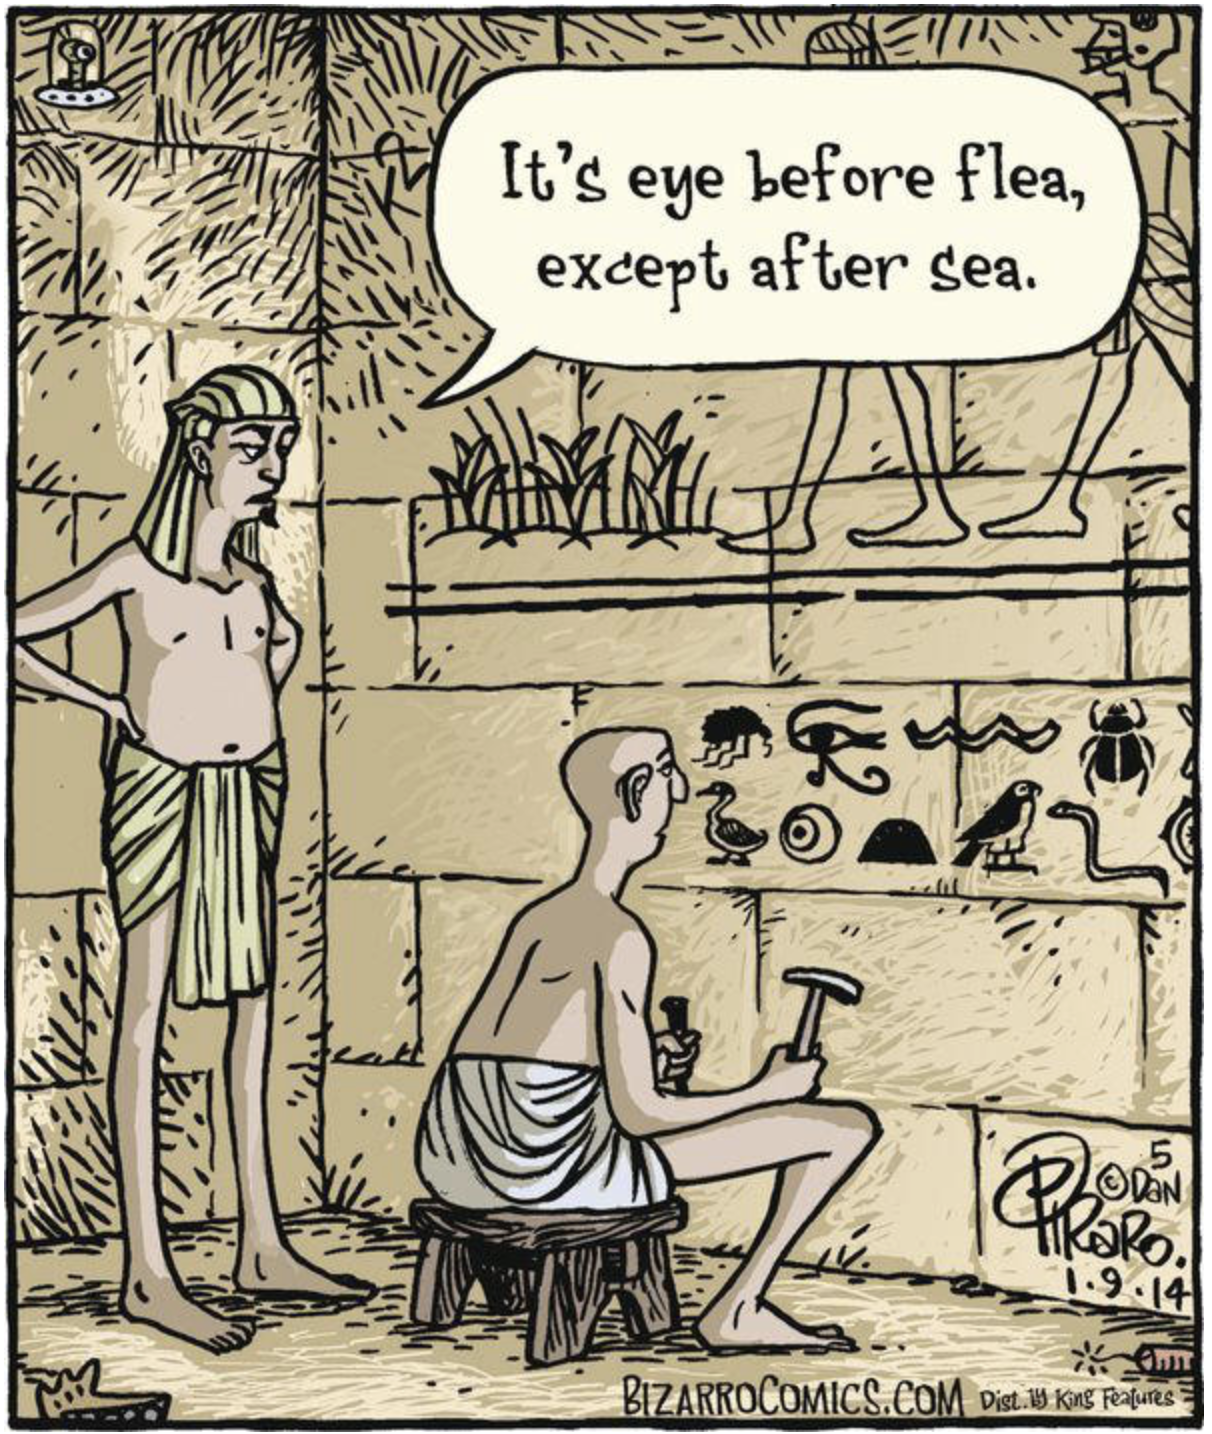 #grammar #egypt #comic #escapealaska #escaperoom #anchorage #alaska #tourism #travel